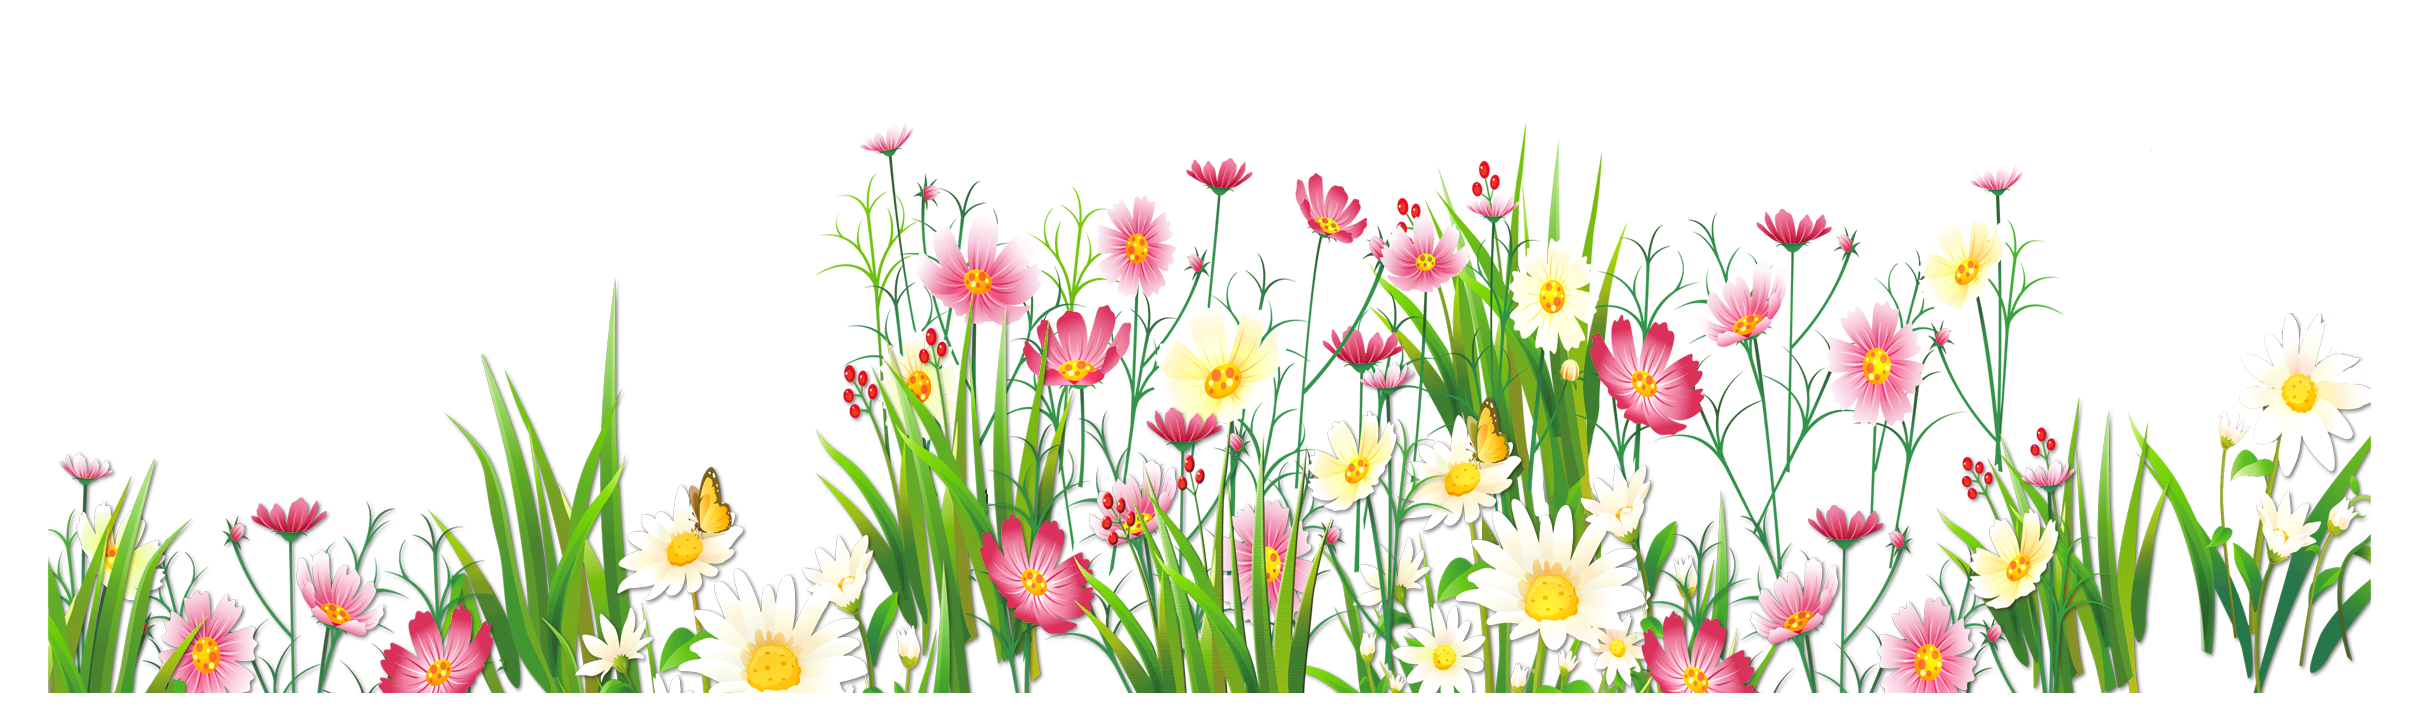 Tumblr flower clipart graphic freeuse library Flowers and Grass PNG Picture Clipart | PNG Flowers | Pinterest ... graphic freeuse library